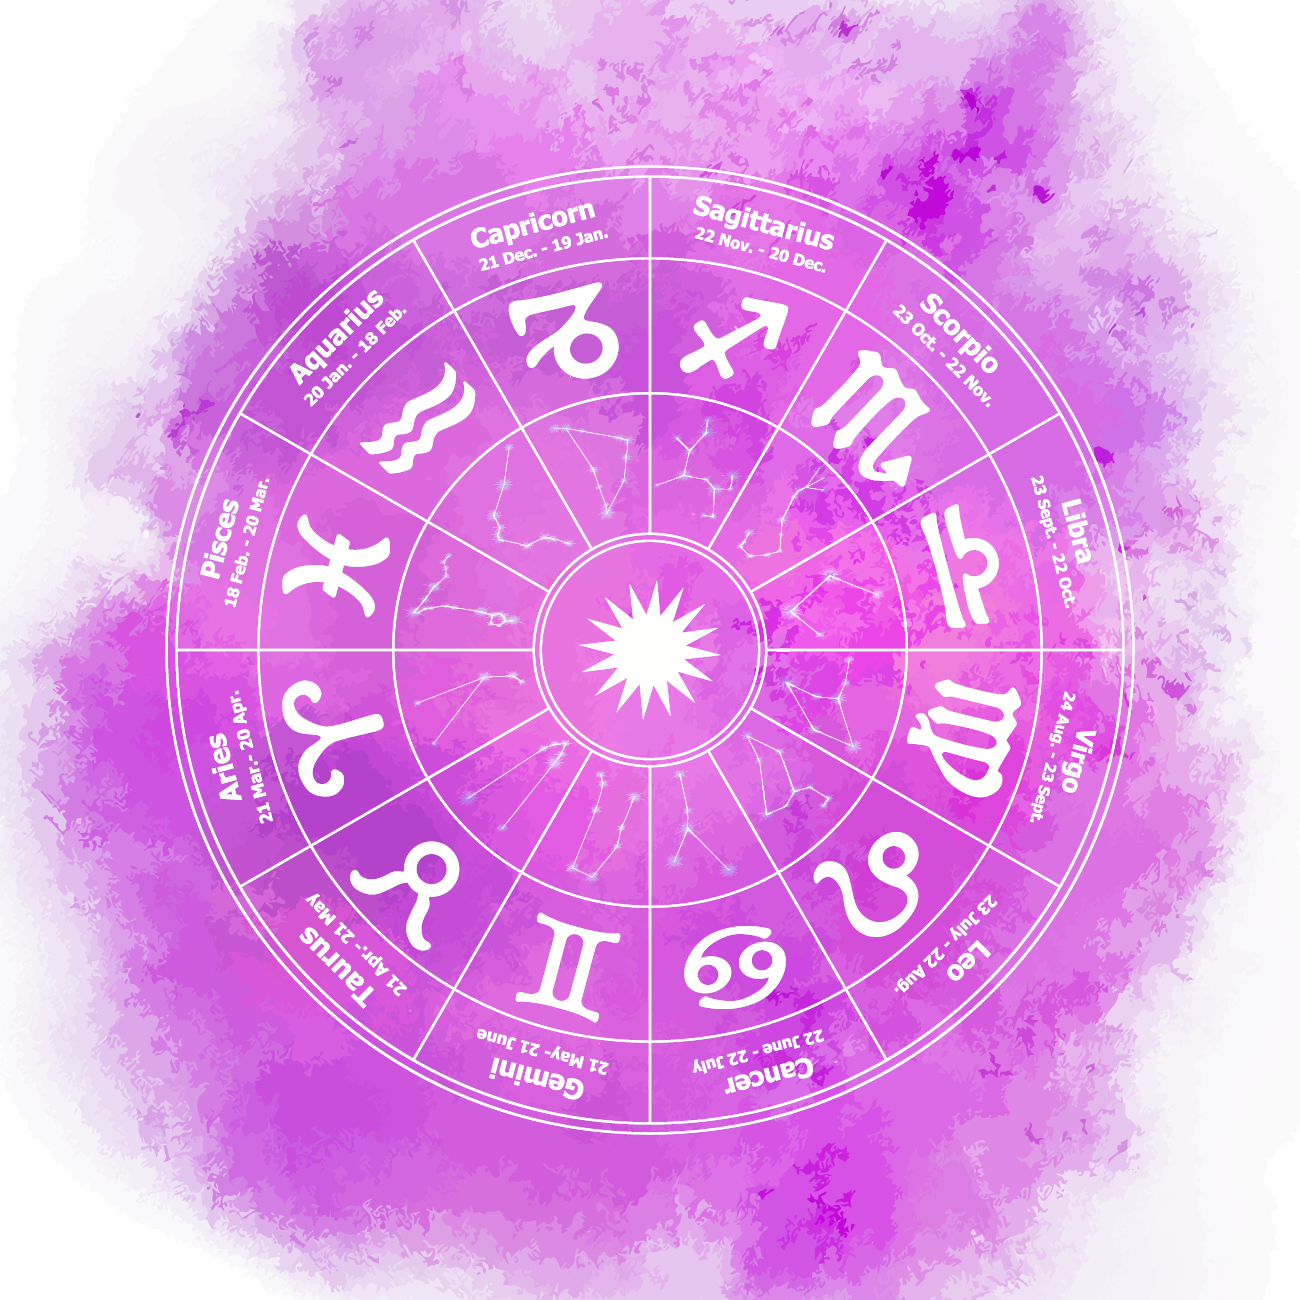 Daily Horoscope – All Signs – Day After Tomorrow